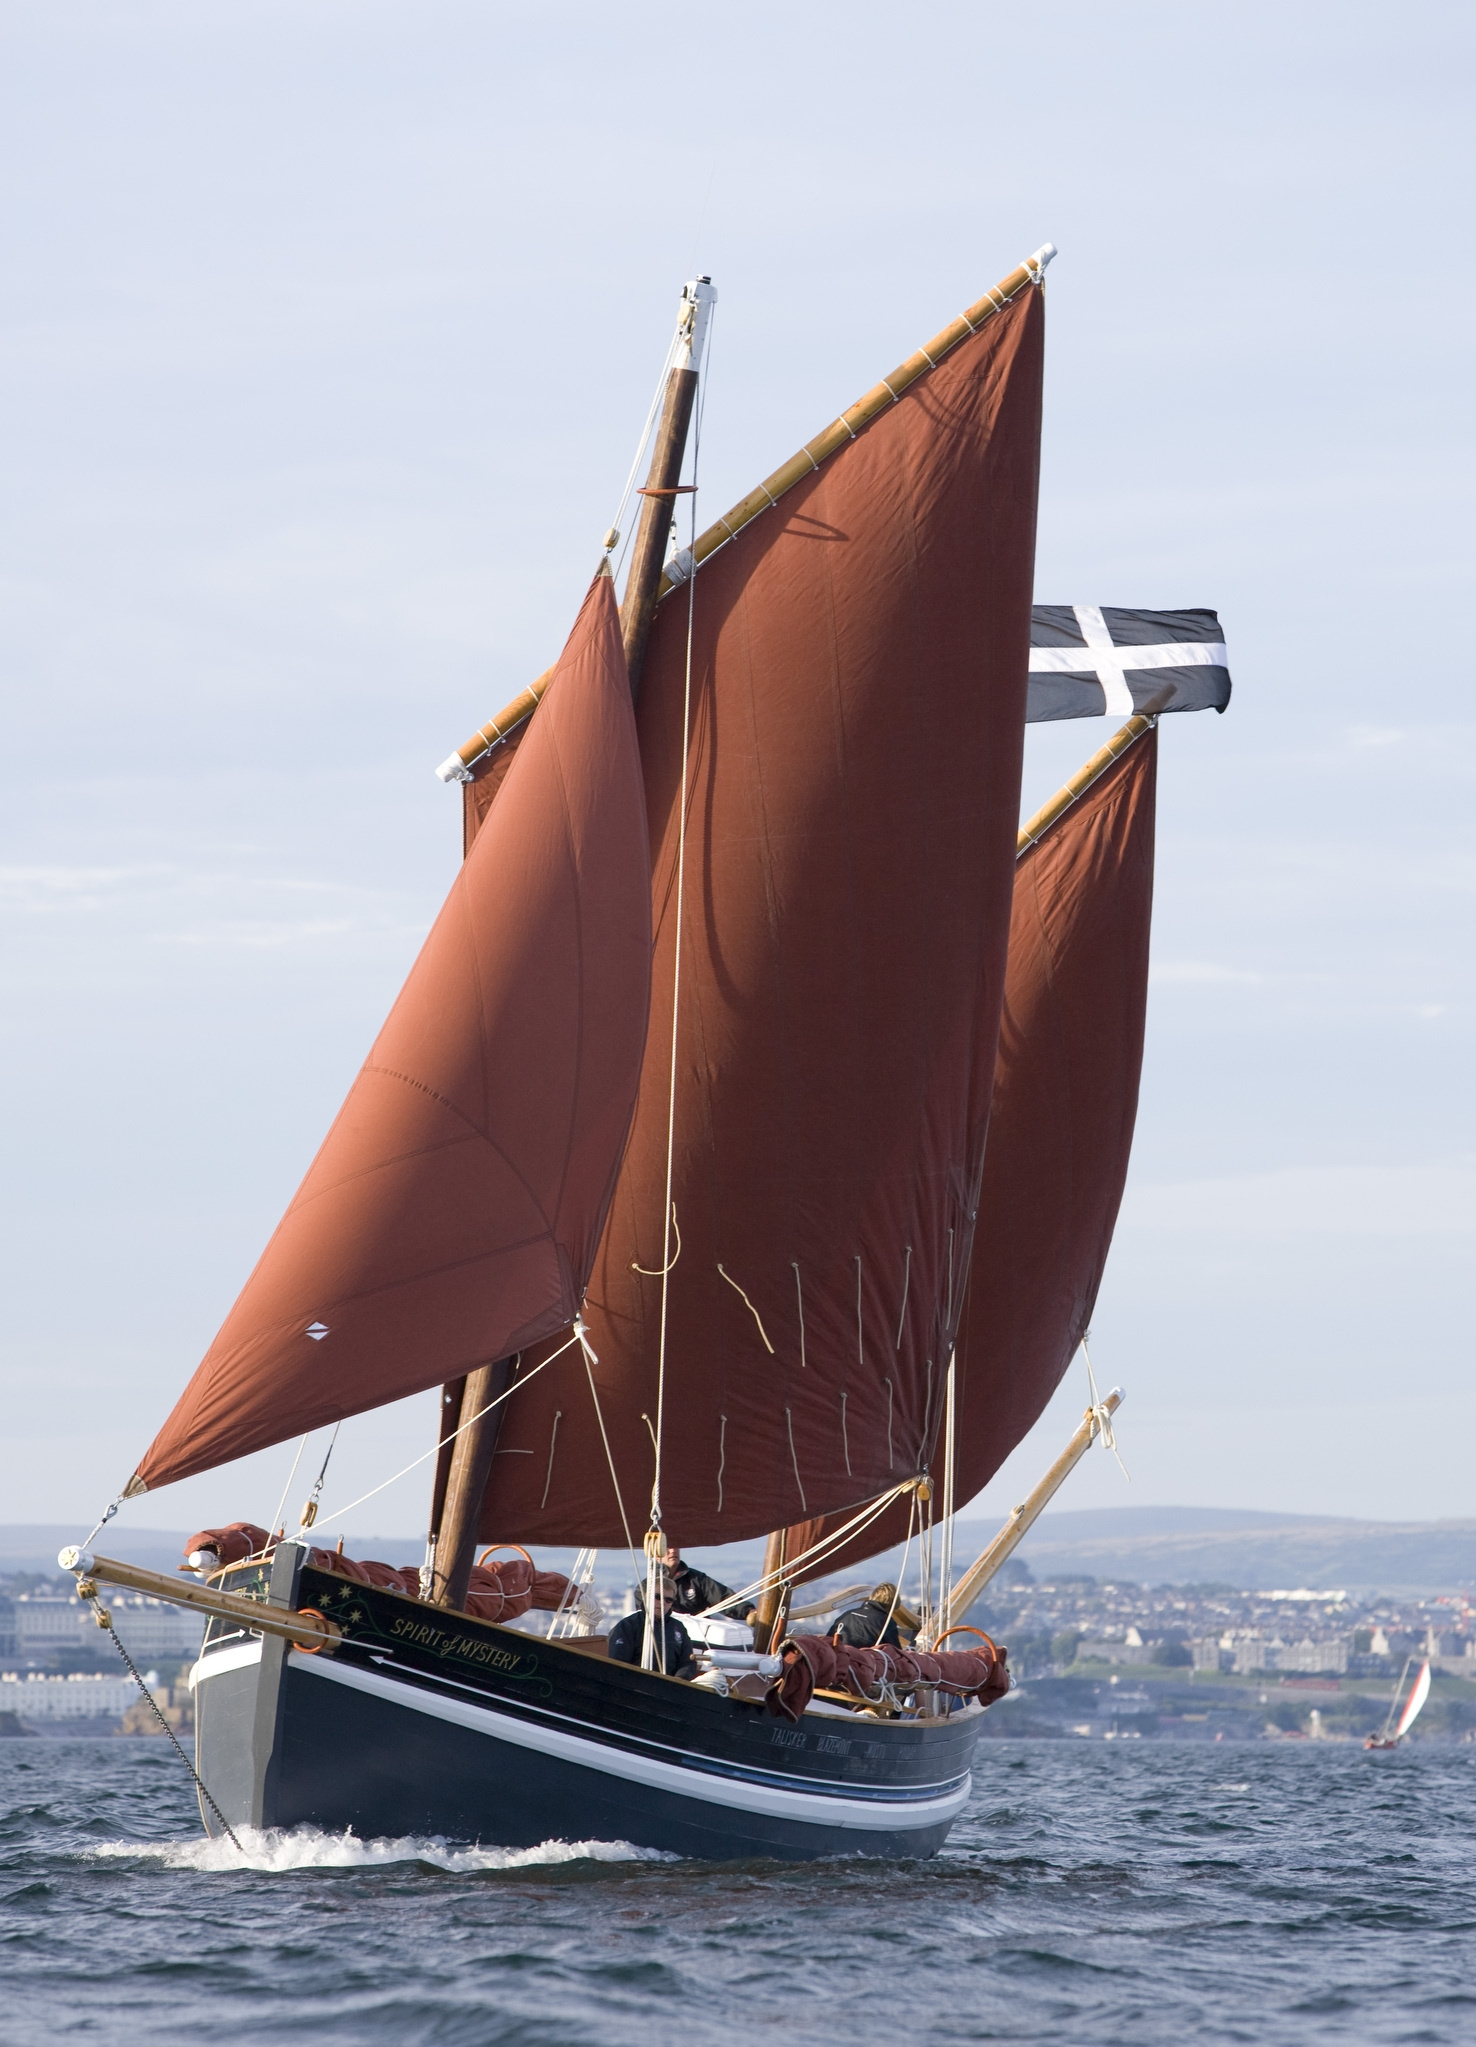 Pete Goss launches his new lugger – intheboatshed.net